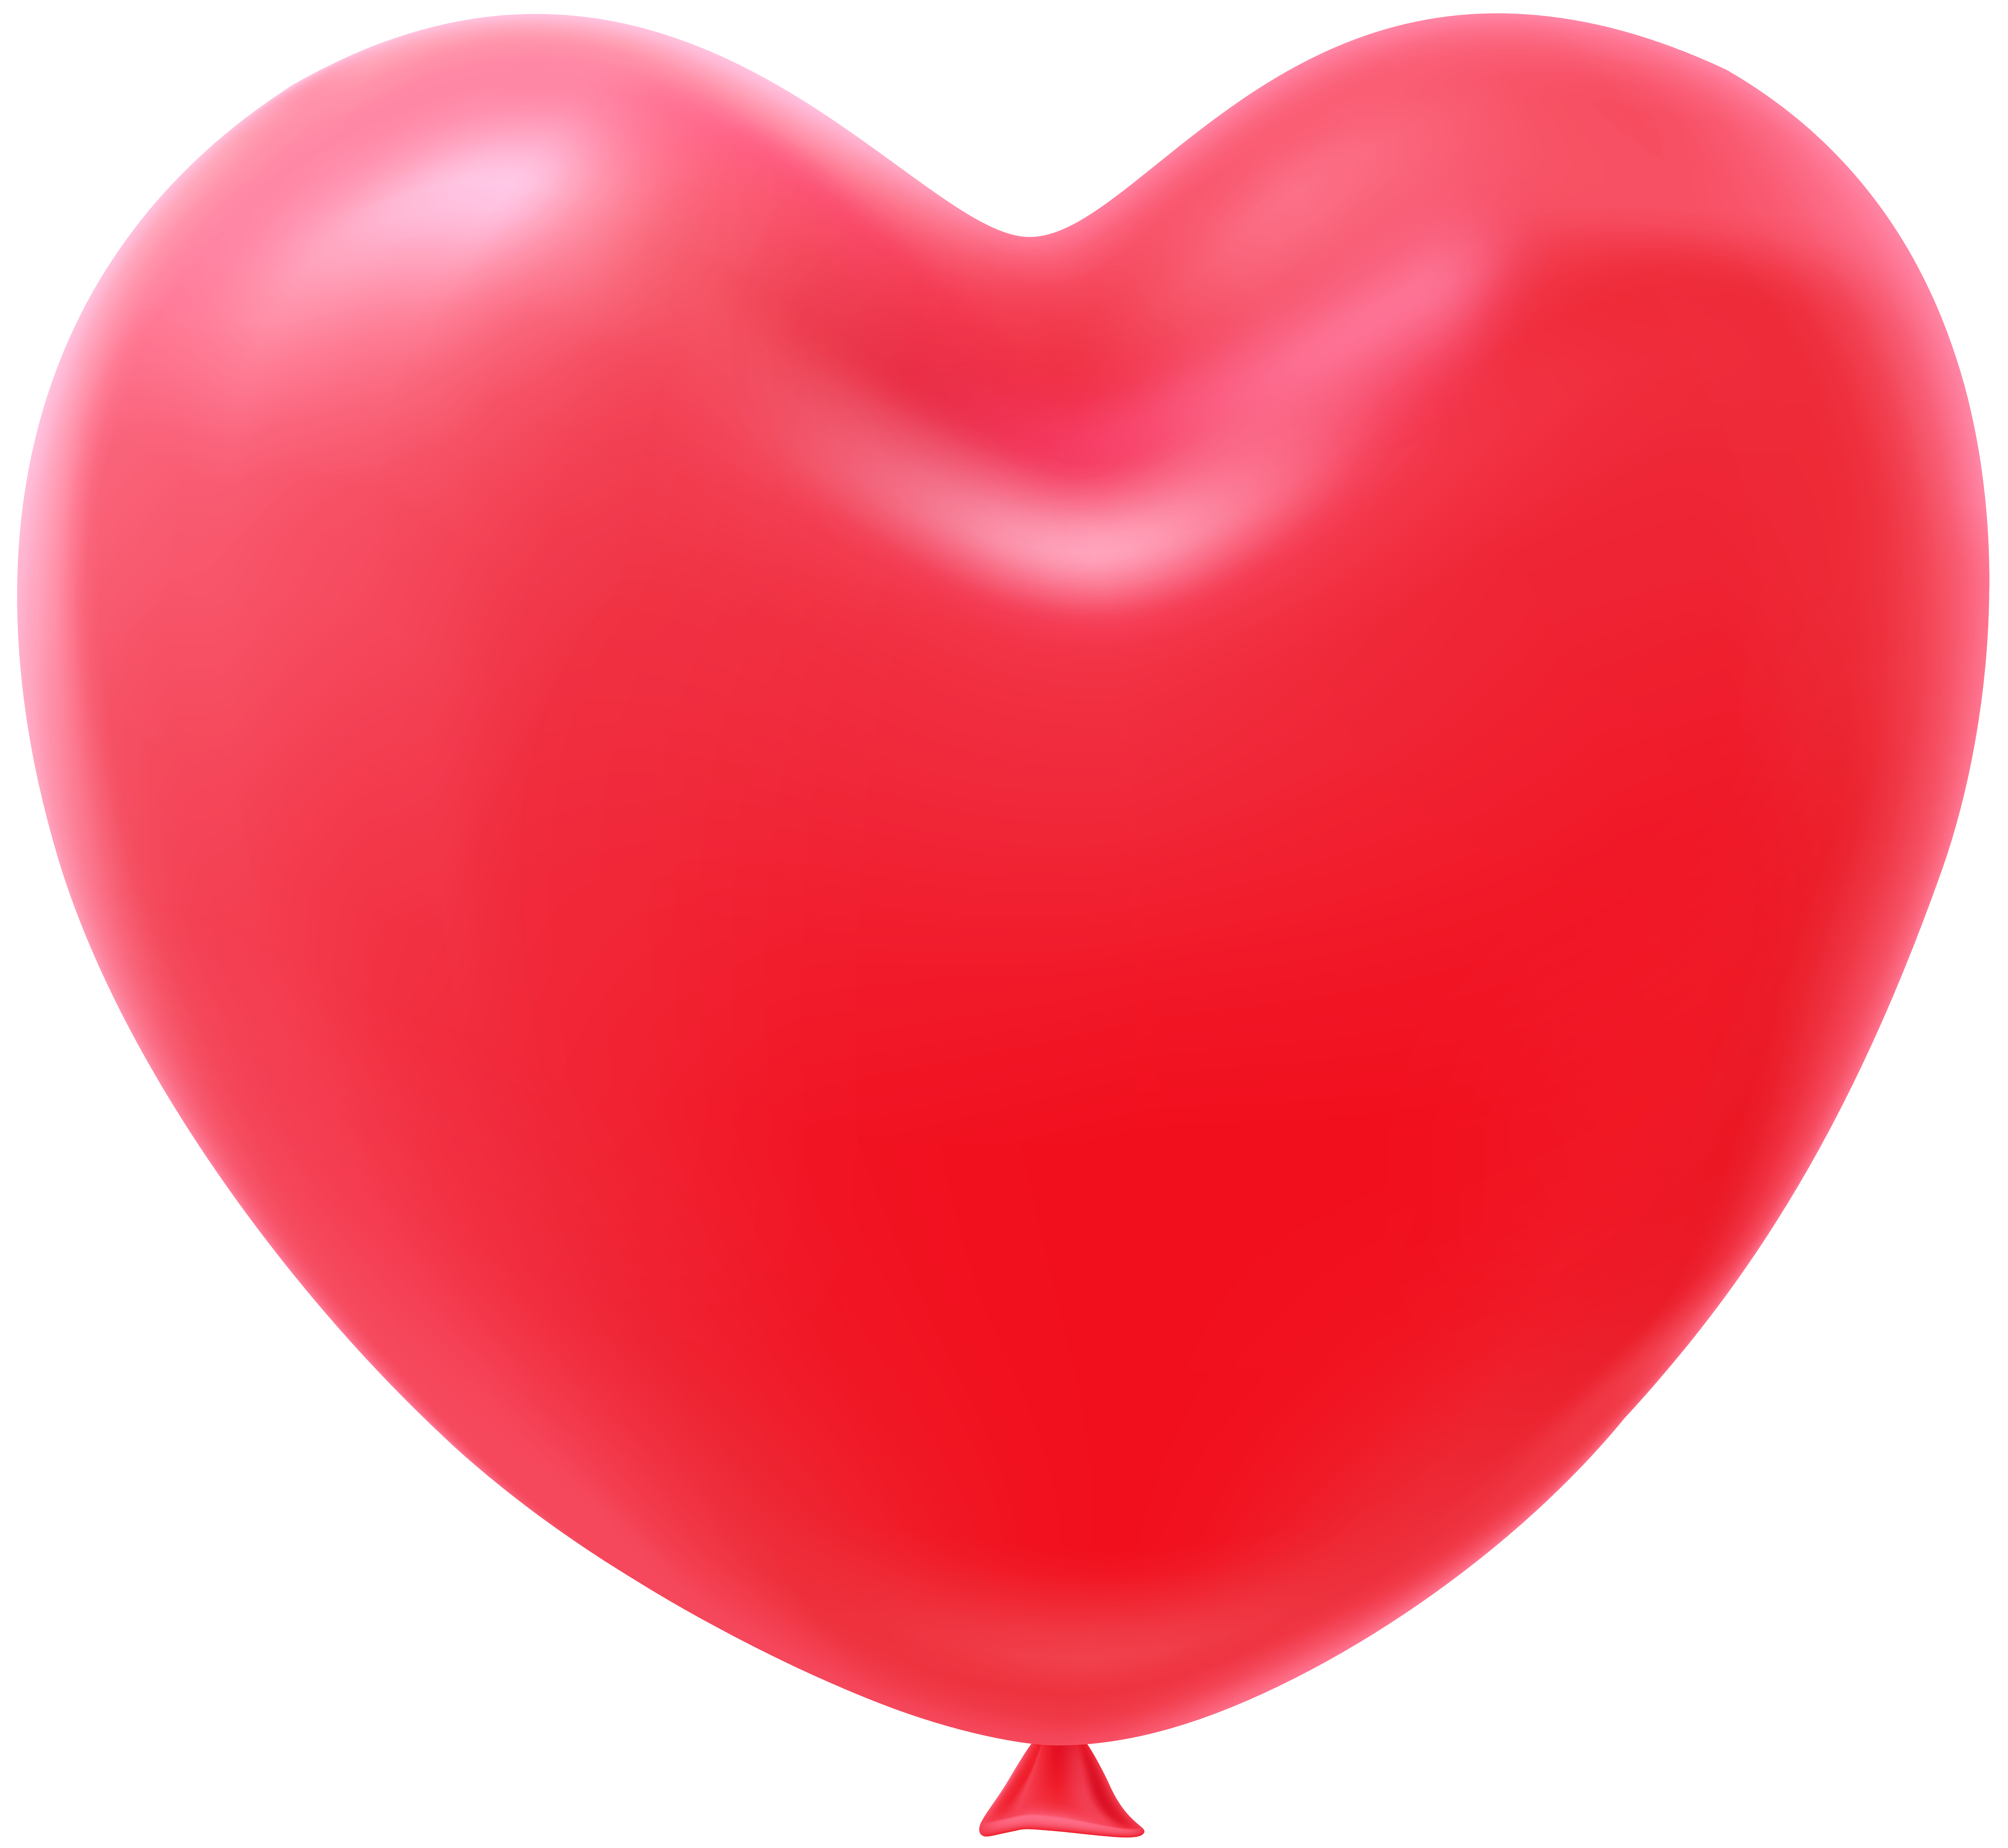 Heart shaped balloons clipart vector black and white Heart Shape Balloon Red Transparent Clip Art Image | Gallery ... vector black and white